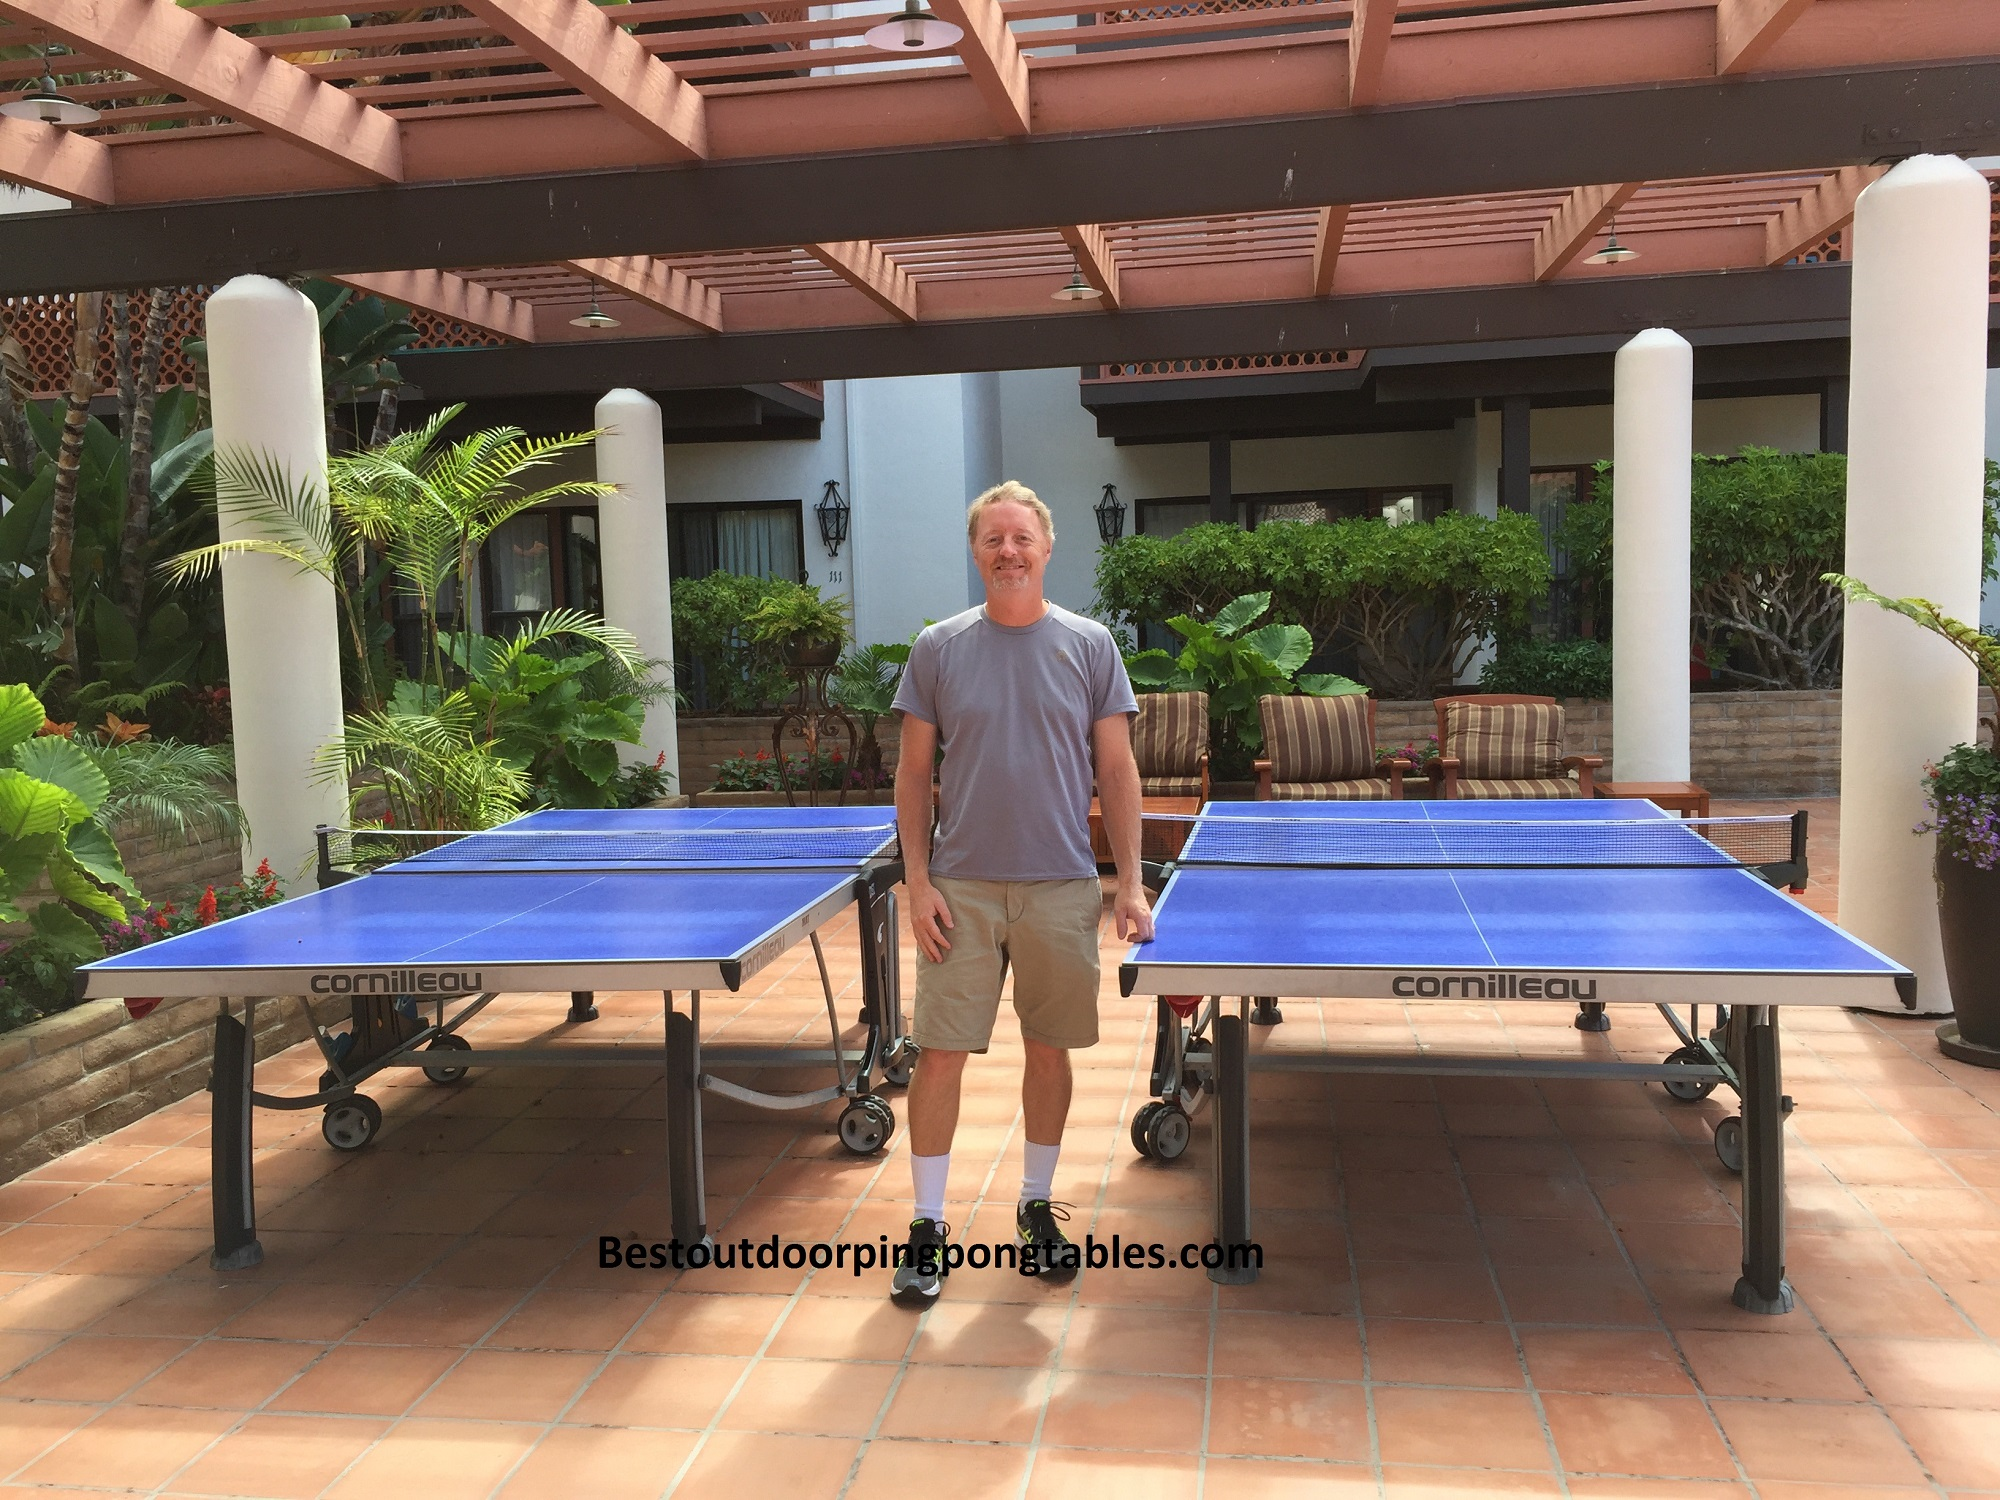 Cornilleau 500m Crossover Outdoor Ping Pong Table